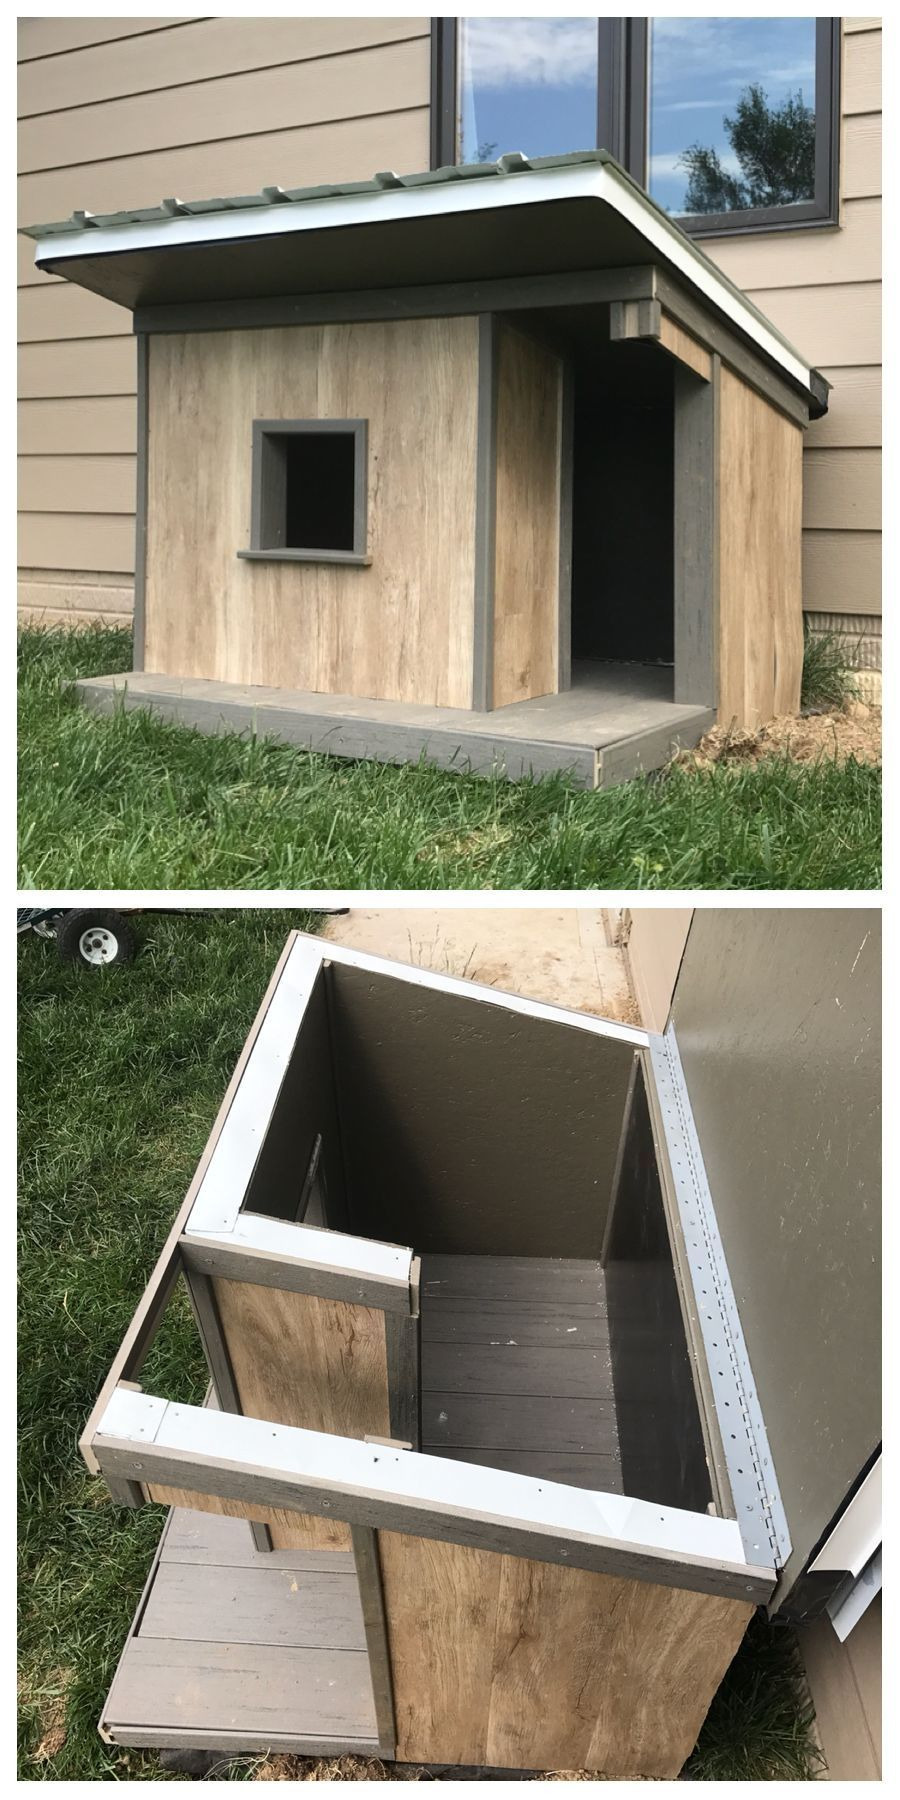 Insulated Dog House Plan Beautiful Cold Weather Dog House Plans Con Imágenes